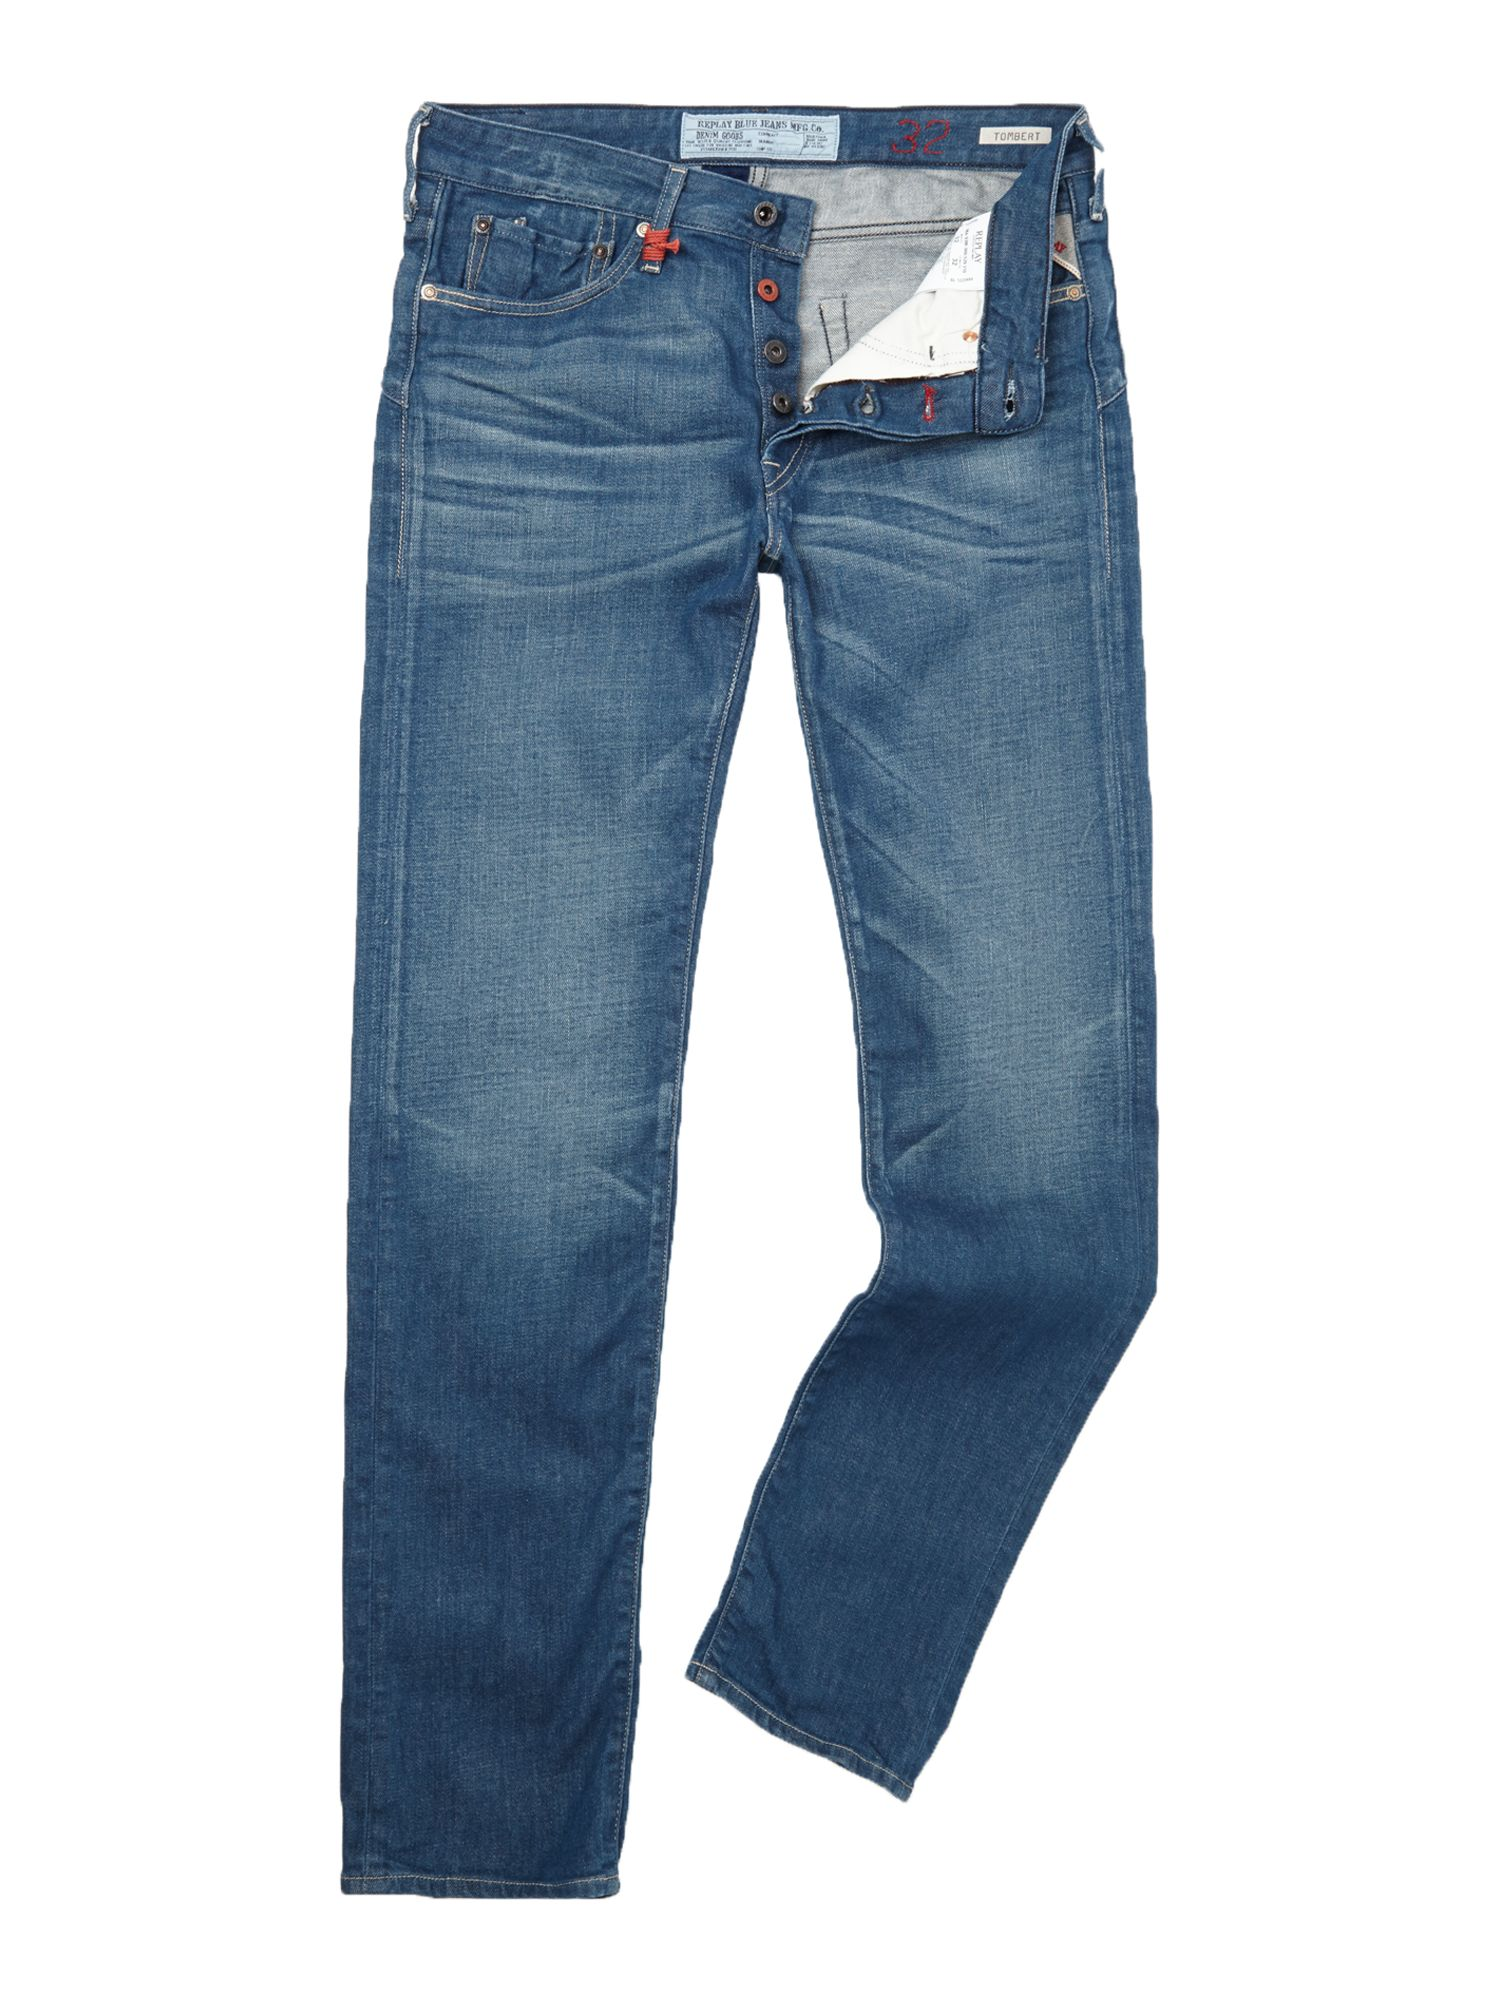 Tombert regular ergonimnic fit denim jeans